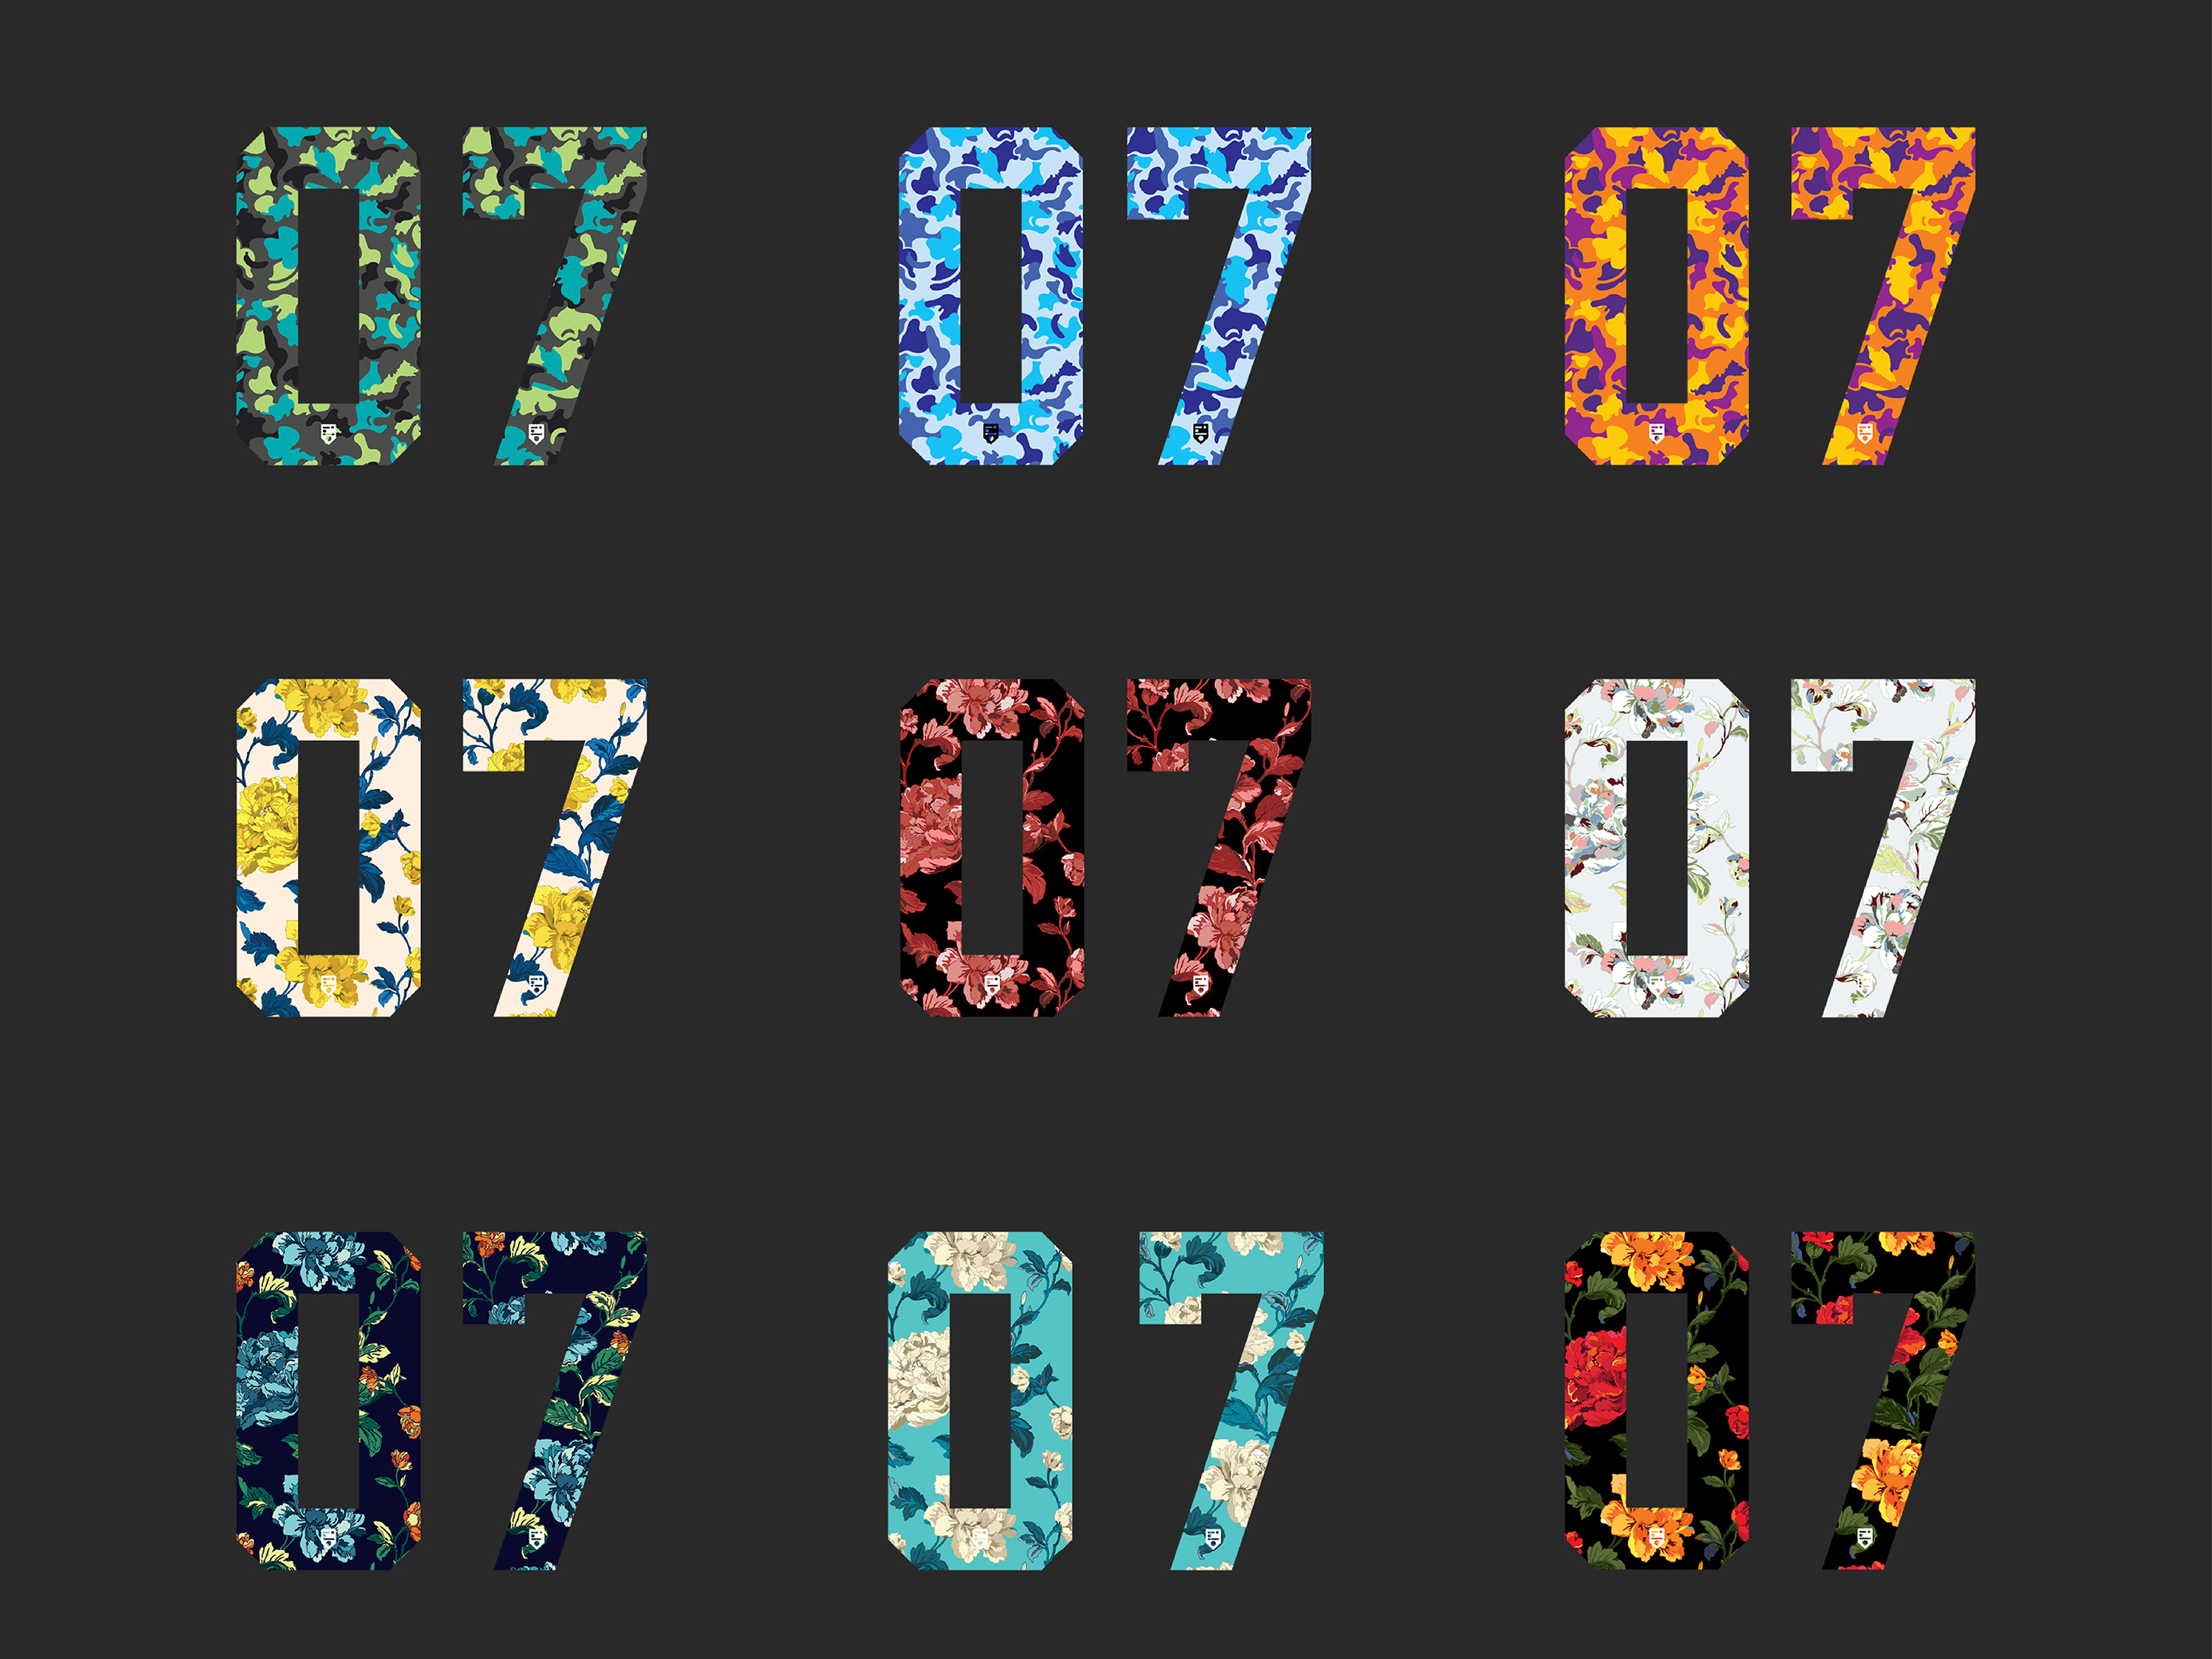 IDOTshirt branding development and brand collateral design showing illustration of number series with colourful selection of floral and camouflage patterns